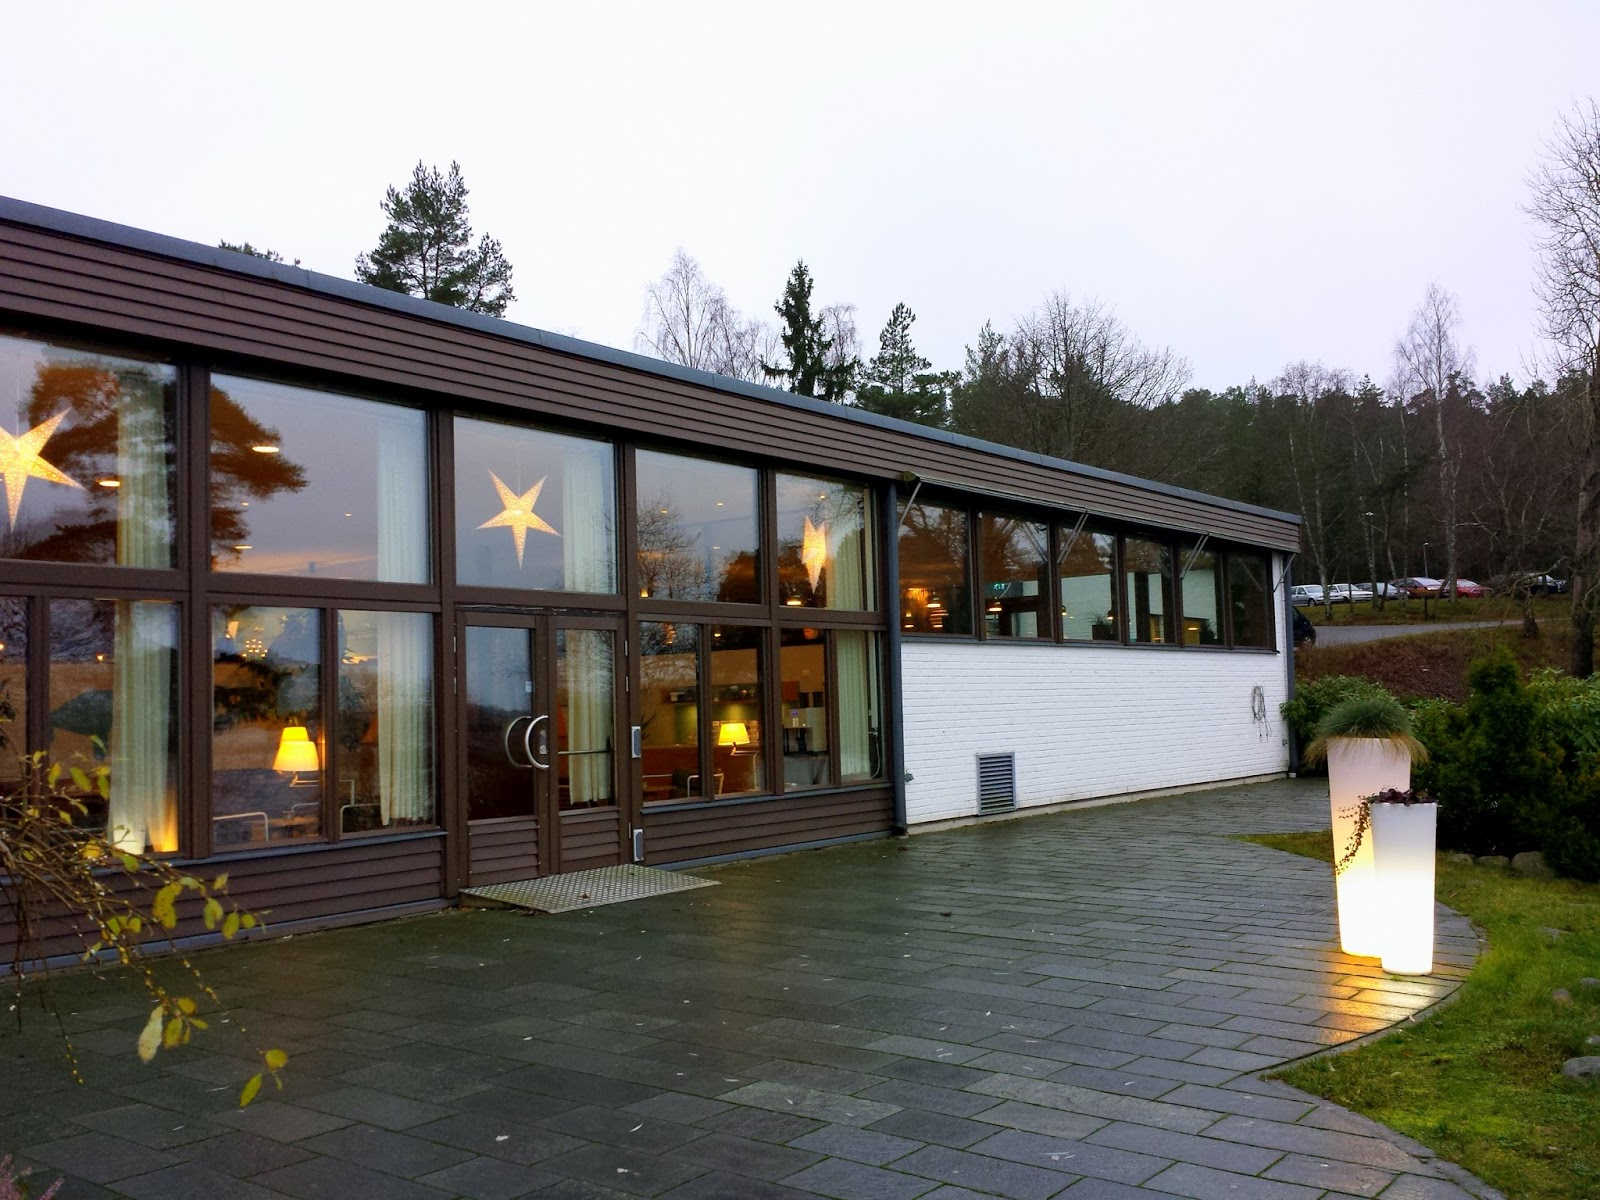 Skepparholmen Spa Hotel in Nacka, Stockholm + Swedish sauna customs  |  Swedish sauna rituals and snow flurries by the sea on afeathery*nest  |  http://afeatherynest.com